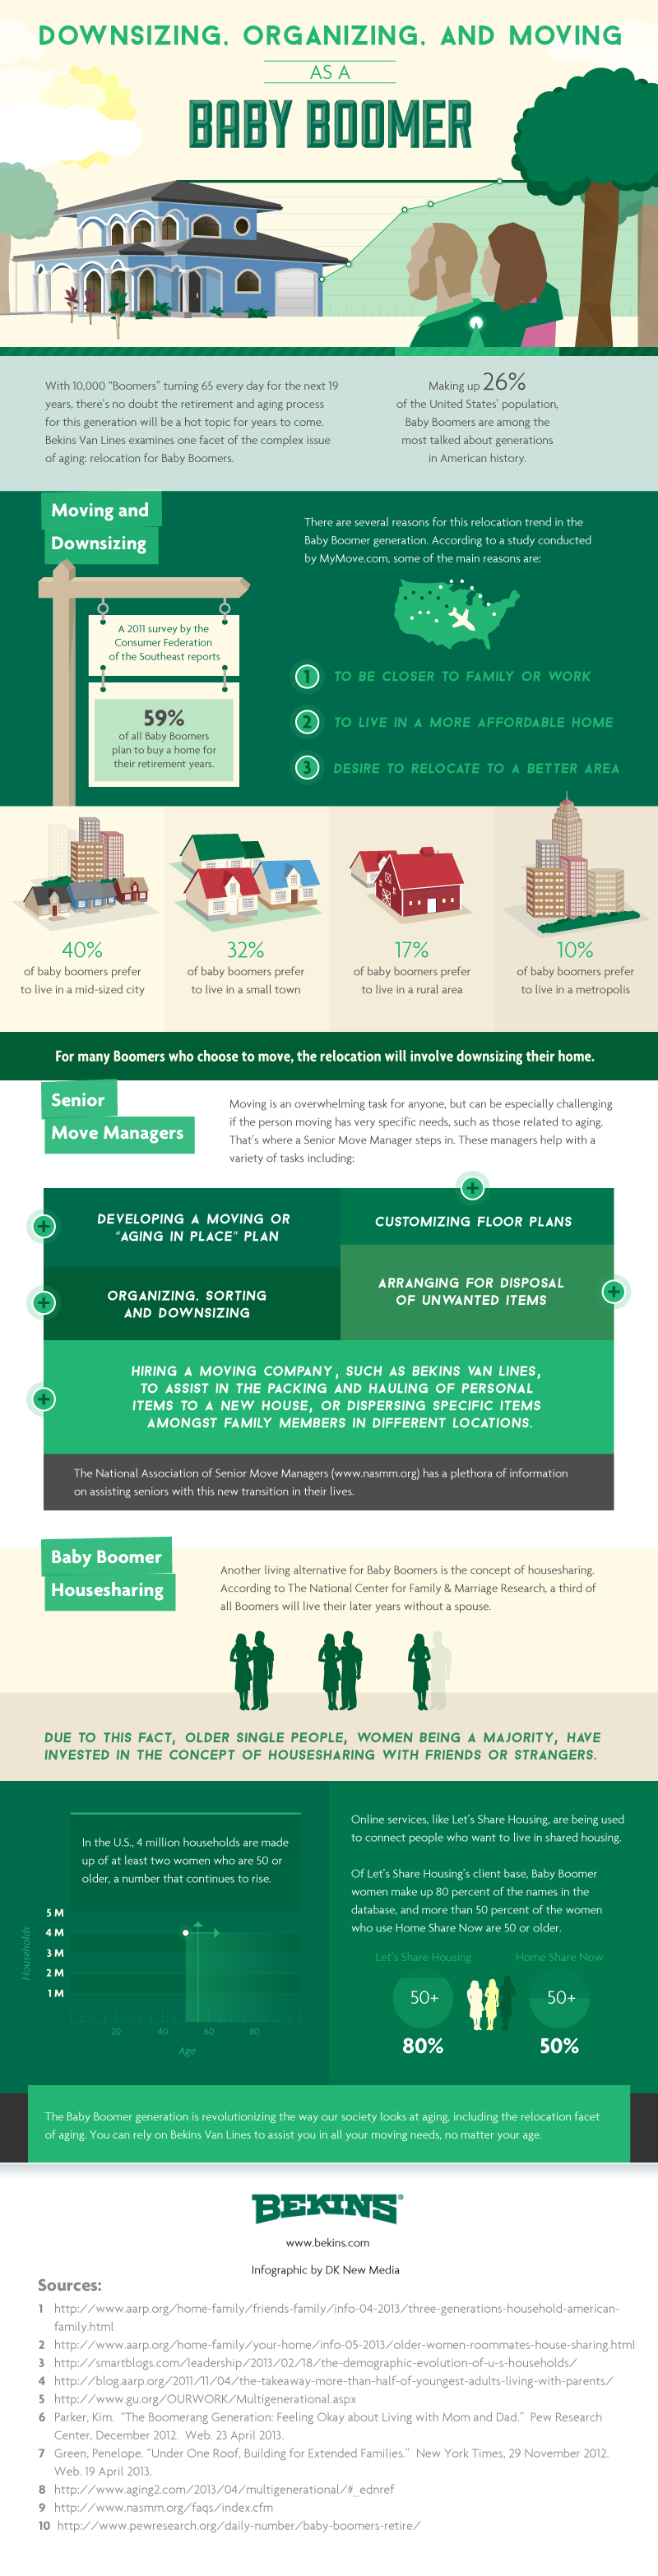 Bekins-infographic-Baby-Boomers